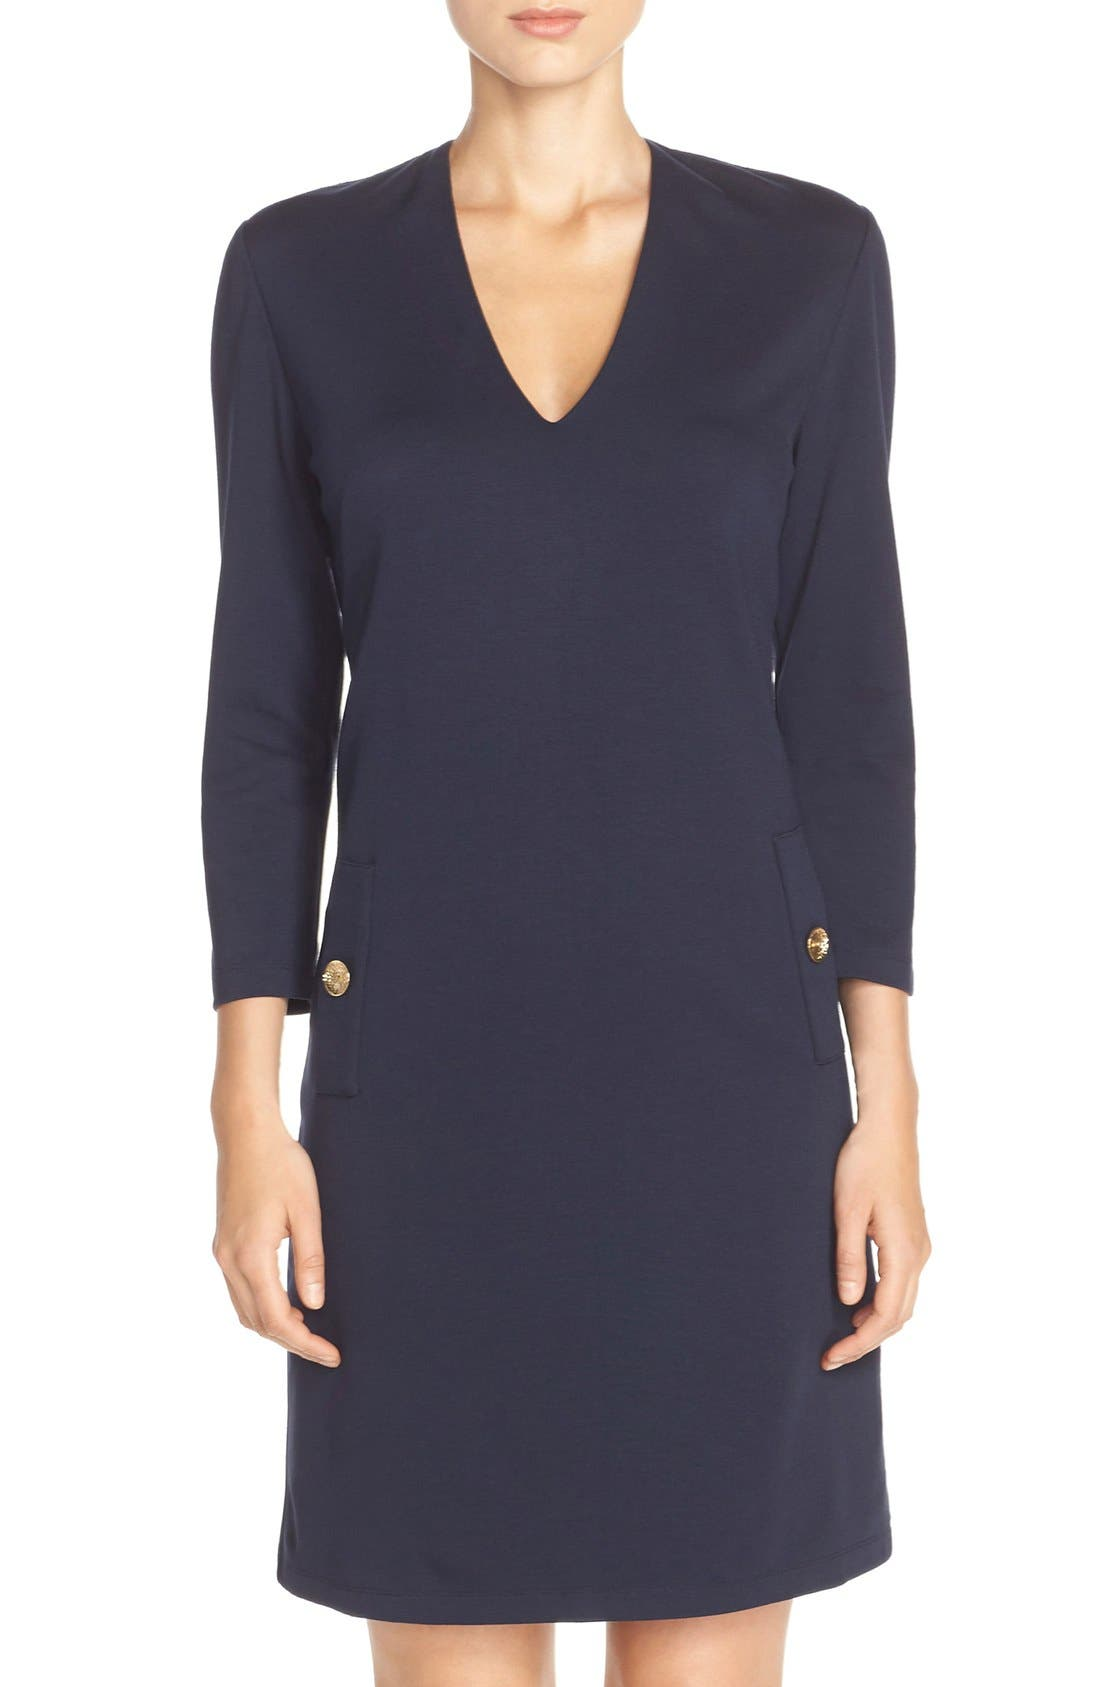 Alternate Image 1 Selected - Eliza J Button Pockets Ponte A-Line Dress (Regular & Petite)